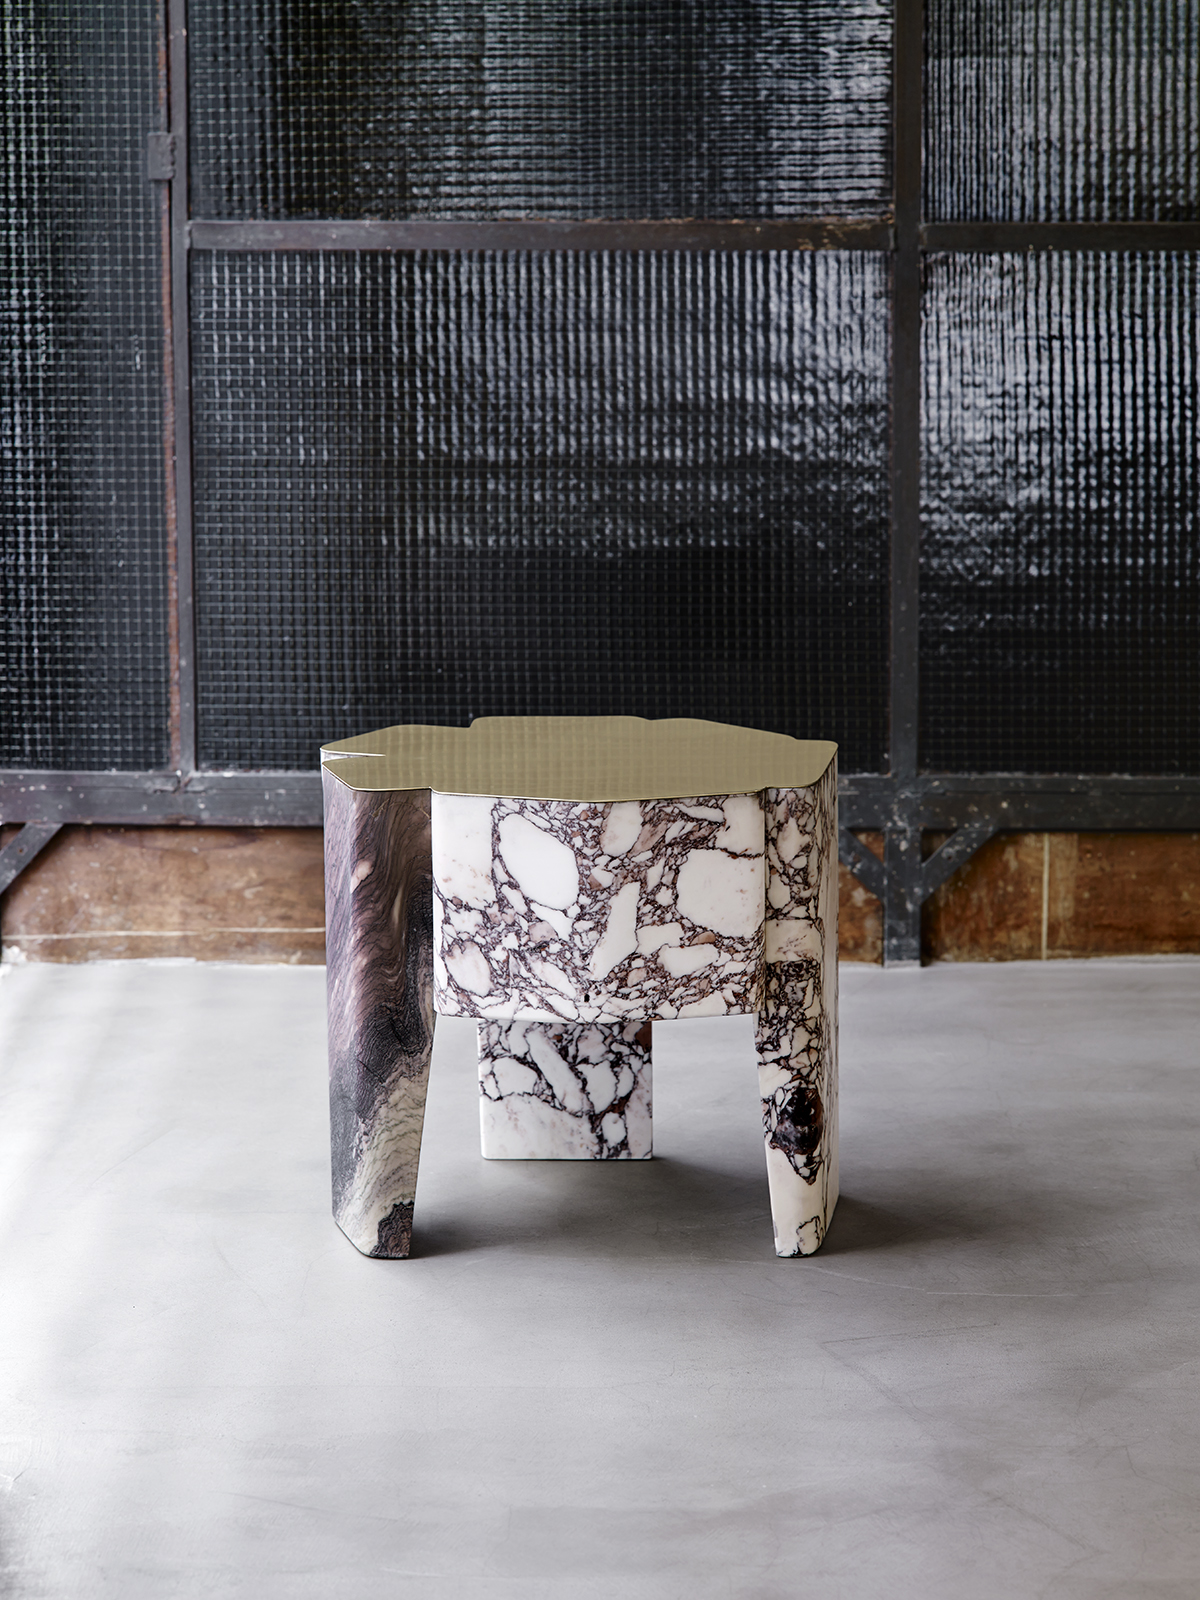 DC1615 marble and silver plated brass side table Vicenzo de Cotiis 2016